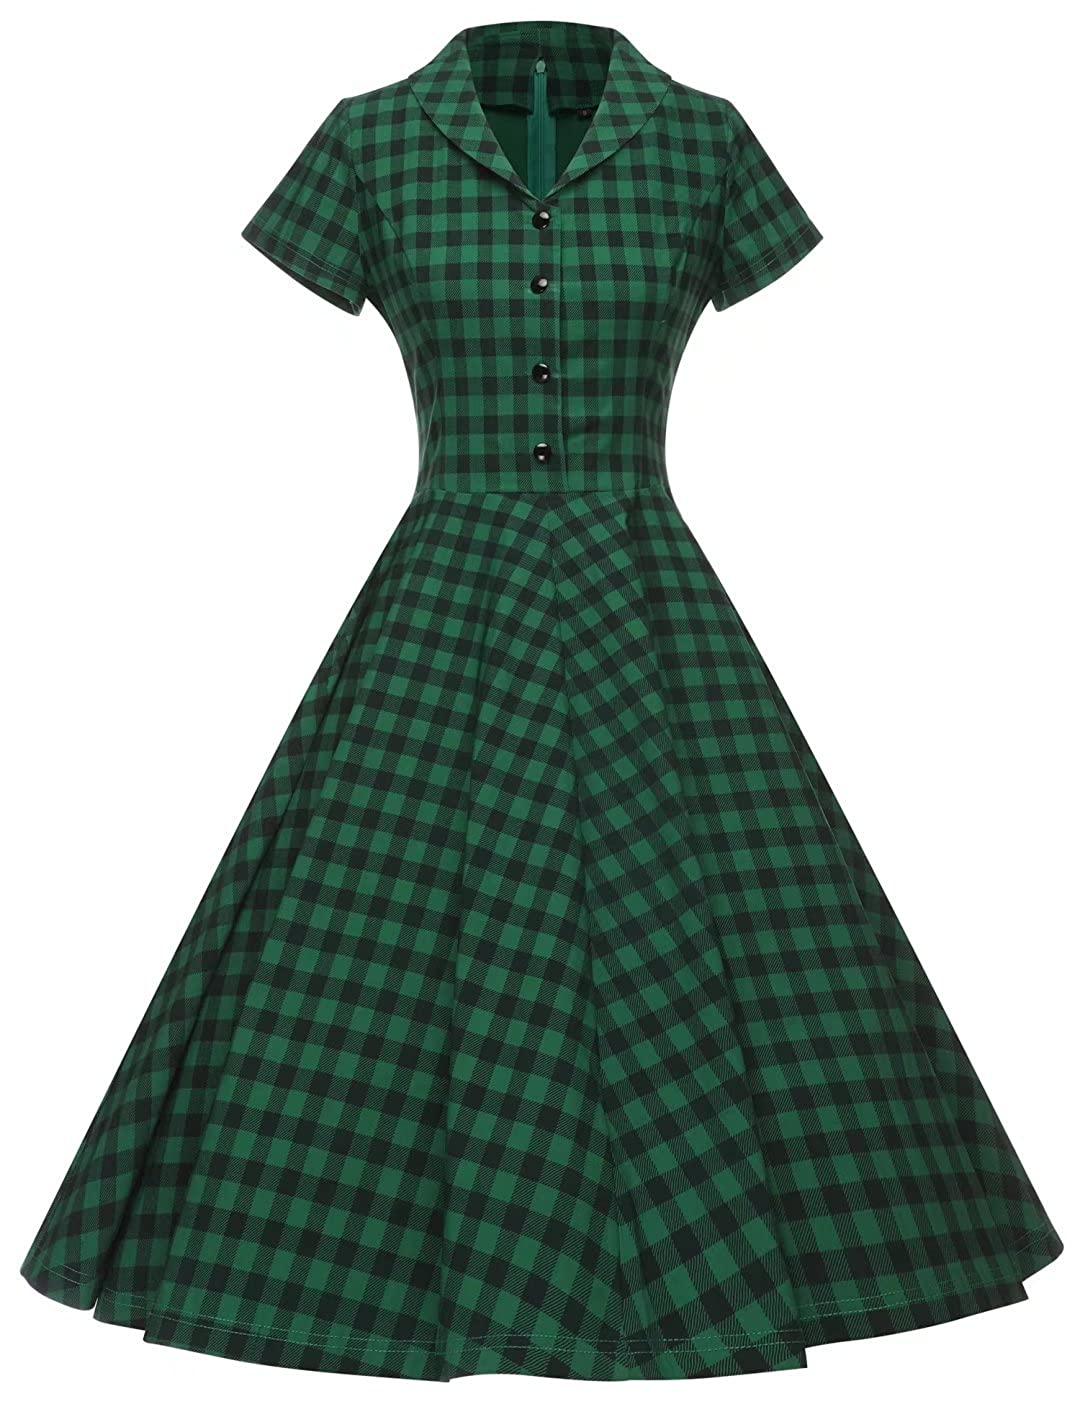 1940s Fashion Advice for Tall Women GownTown Womens 1950s Vintage Cap Sleeve Plaid Swing Dress with Pockets $38.98 AT vintagedancer.com